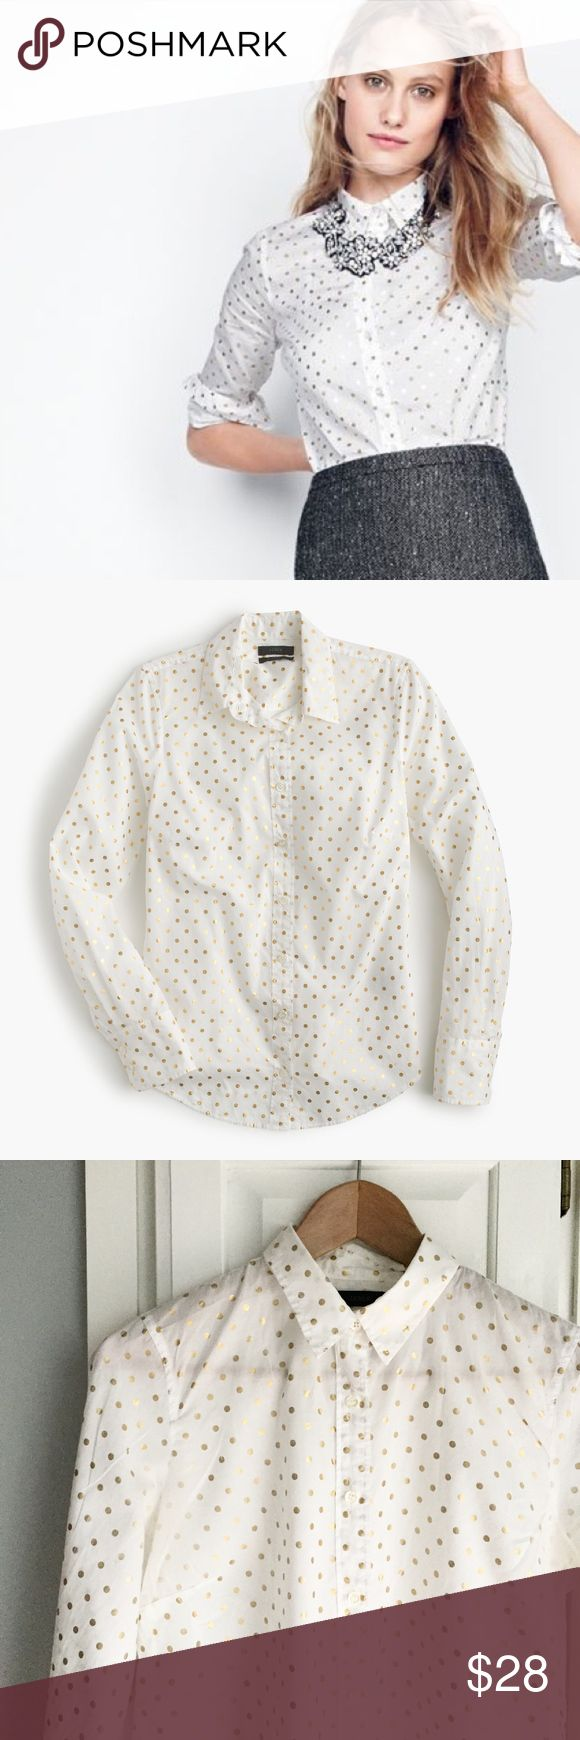 """J. Crew Perfect Shirt in Gold Foil Dot This classic J. Crew top features precisely placed darts for a slimming, waist-defining, tailored fit. This version is crafted in a festive foil dot print that's perfect for the holidays. Cotton with long roll-up sleeves and a button placket. Body length is 26 3/4"""". Machine wash. Slight wear visible on dots that fall under each arm (visible in photos, close-up in final photo). Otherwise in great shape from a pet-free, smoke-free home. J. Crew Tops…"""